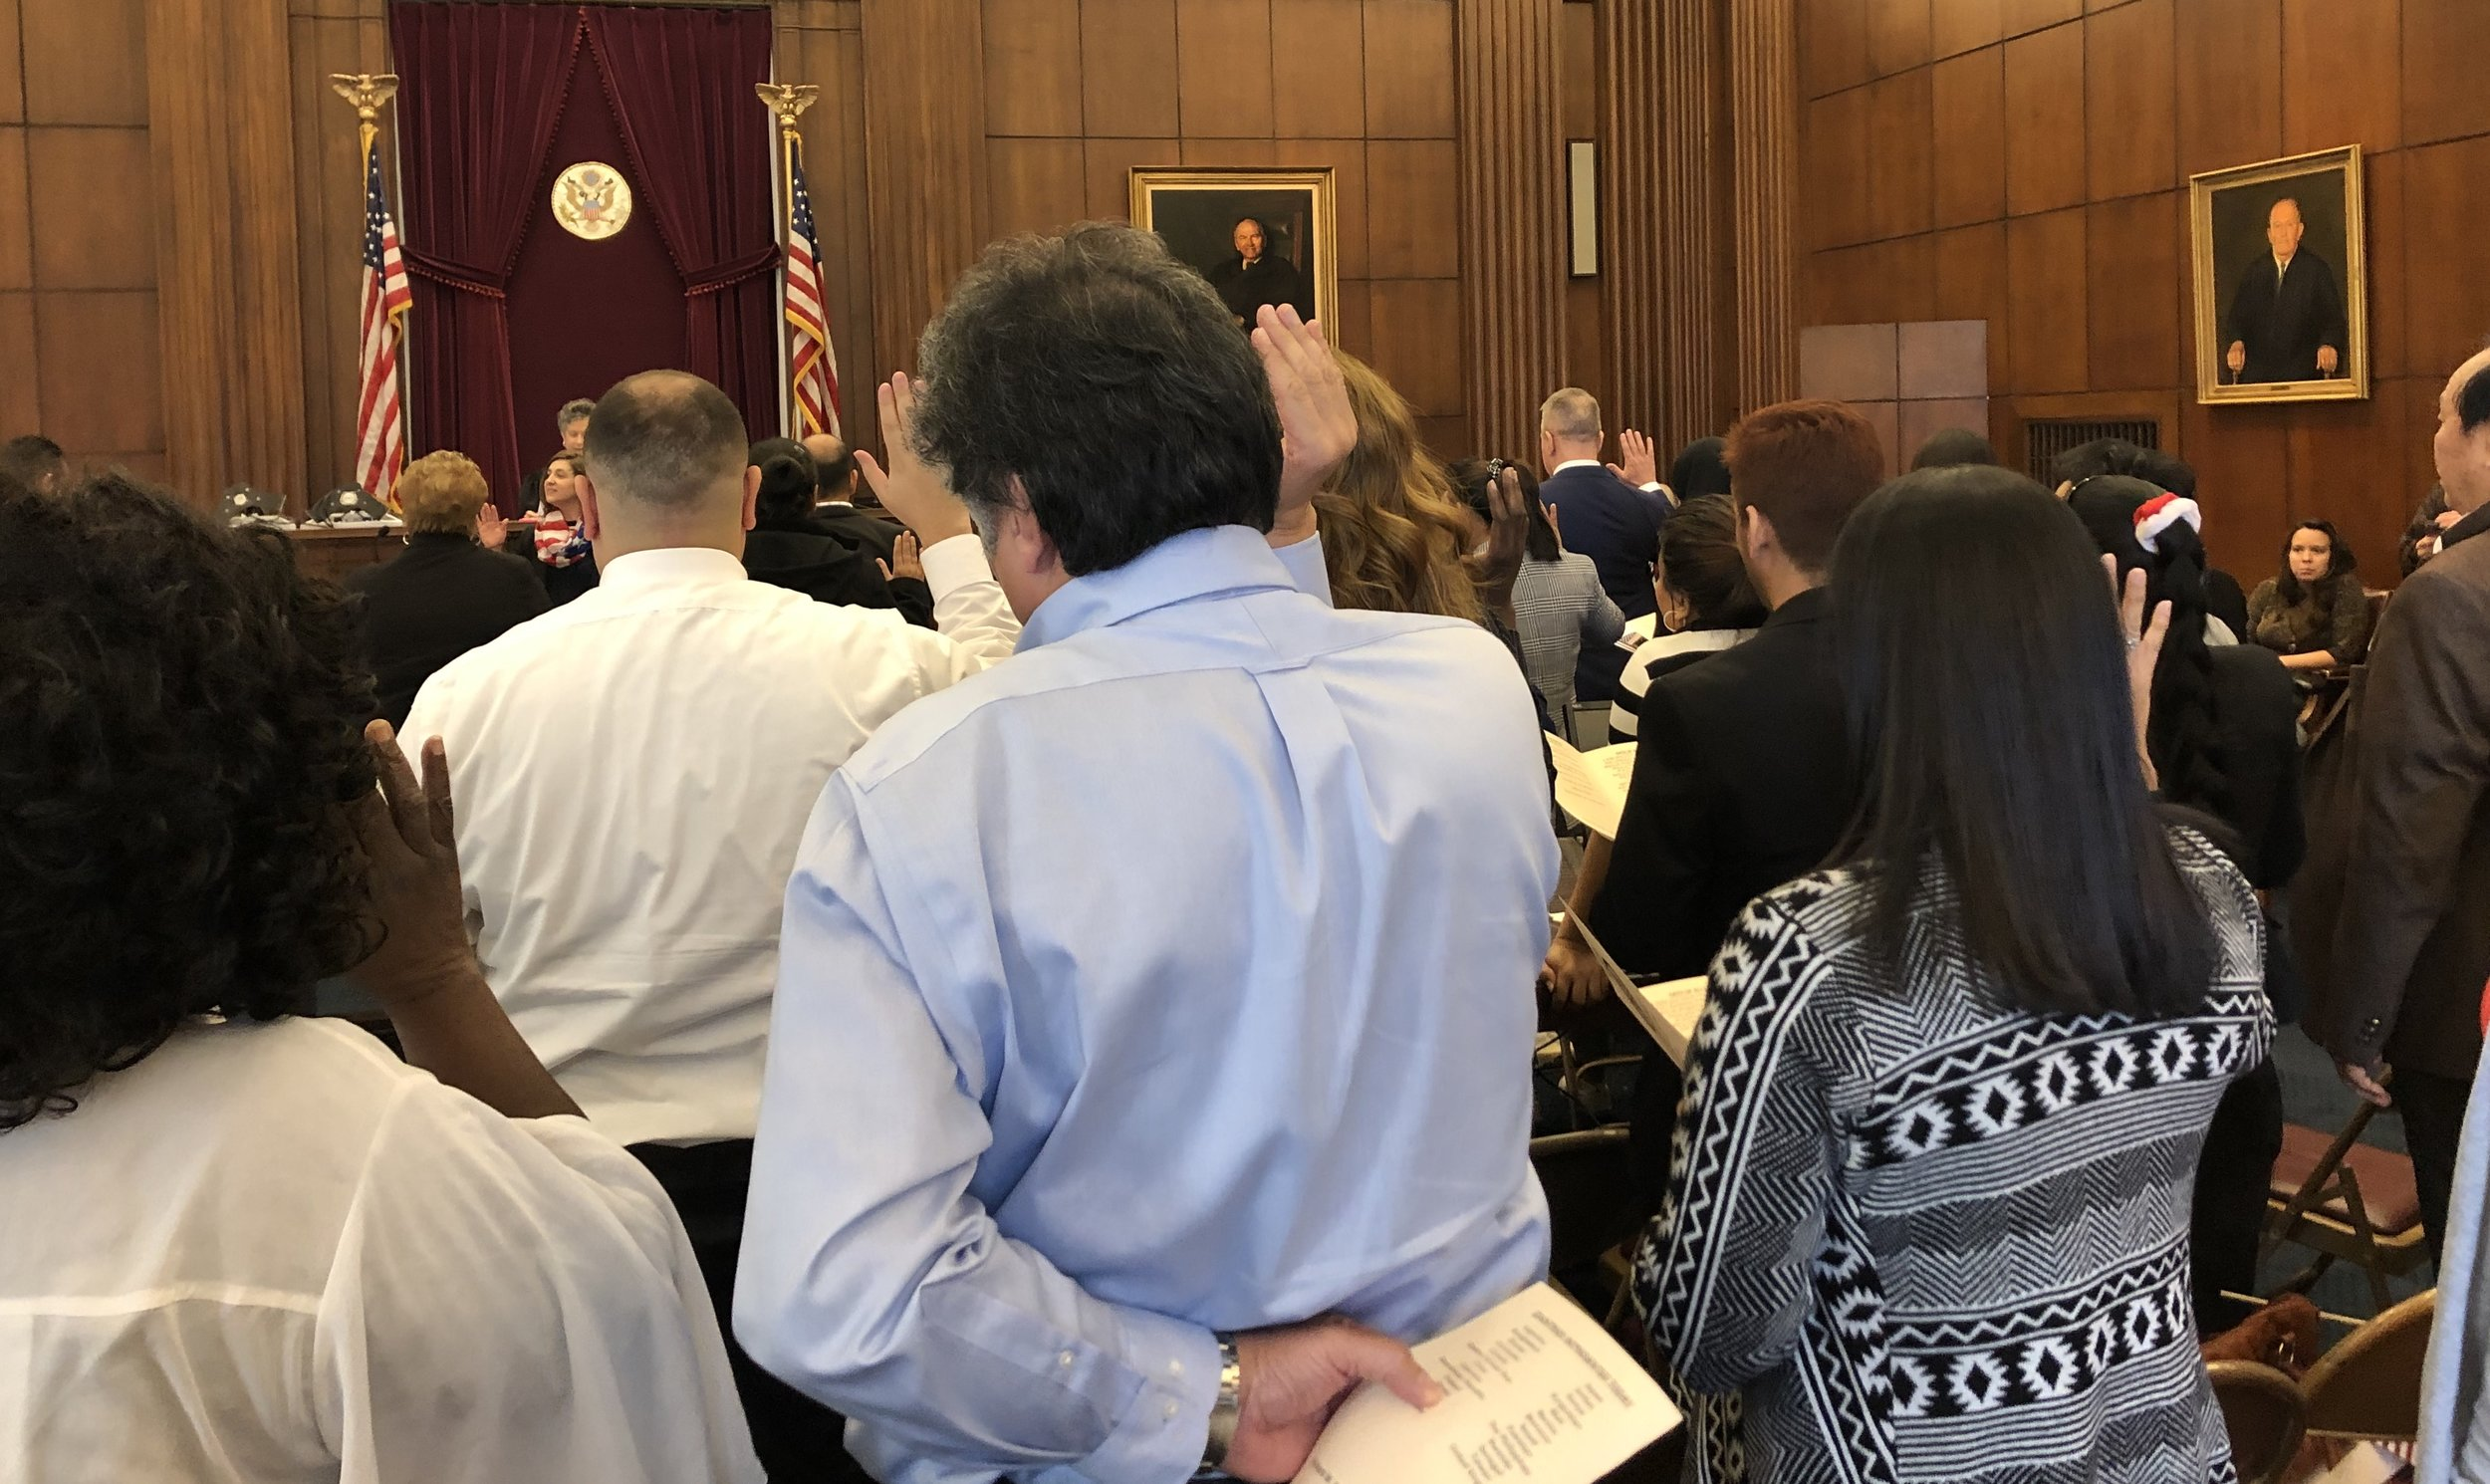 More than sixty other applicants stood to be sworn in as citizens by Magistrate Judge Karen Litkovitz at last December's ceremony in Cincinnati.